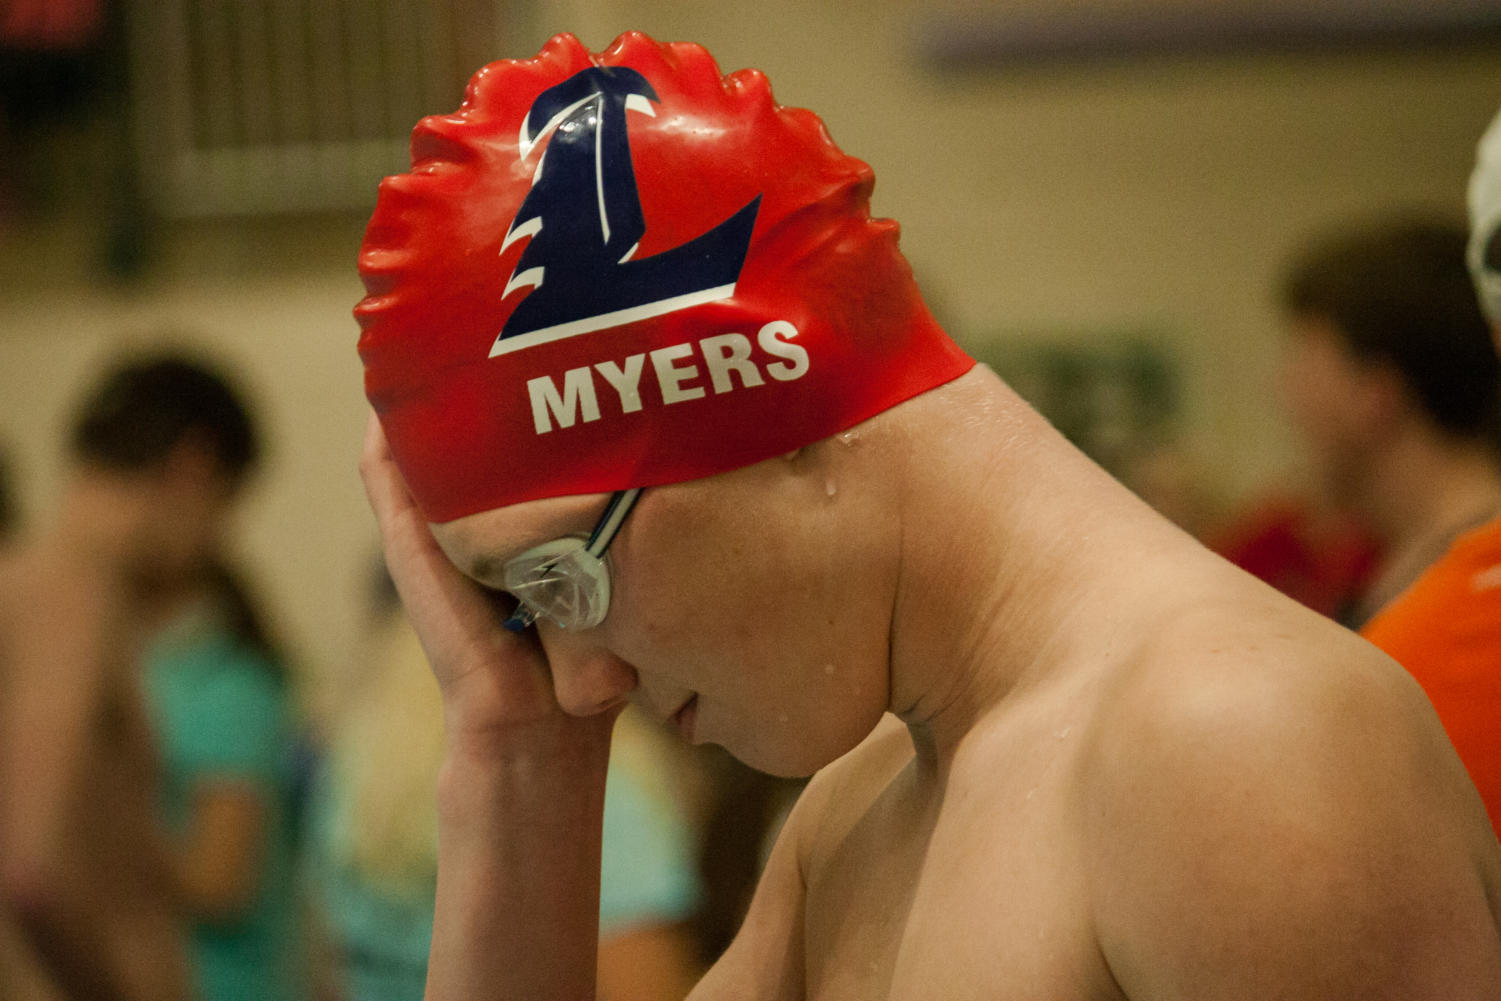 Junior Zach Myers competes in the 200 freestyle relay, 400 freestyle relay, 200 medley relay and the 100 backstroke. He was one of the Liberty swimmers who made it to state.